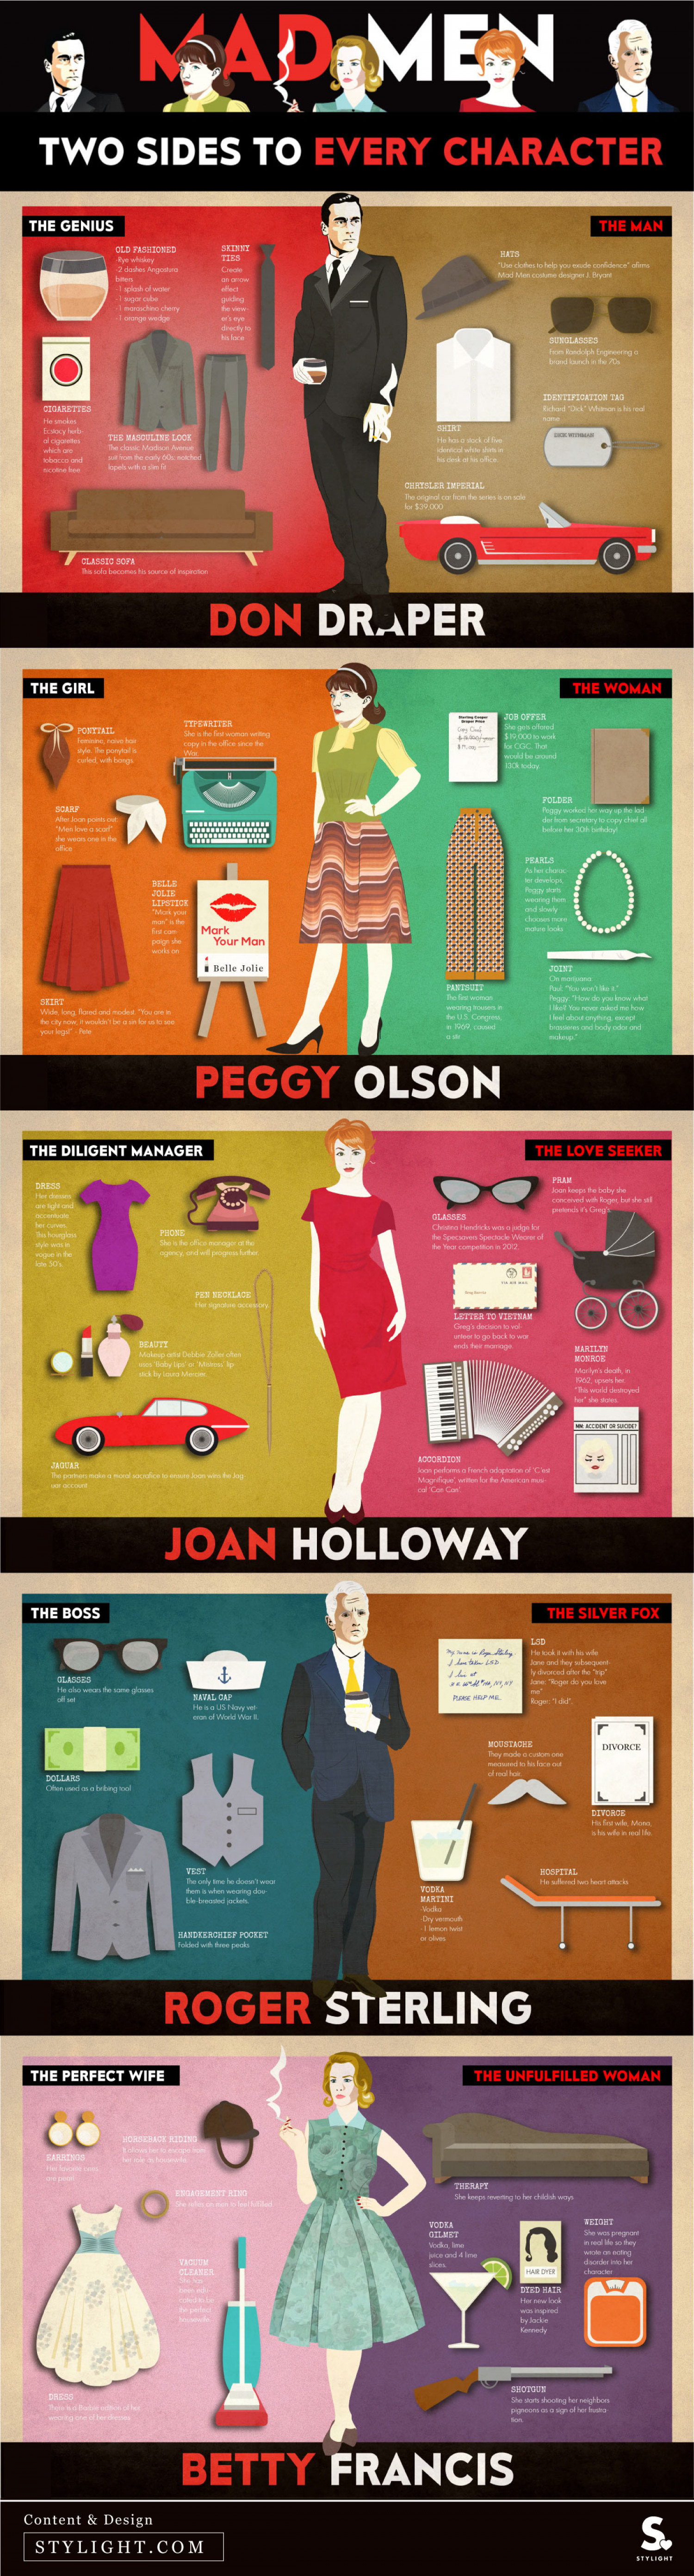 Mad Men: Two Sides To Every Character Infographic